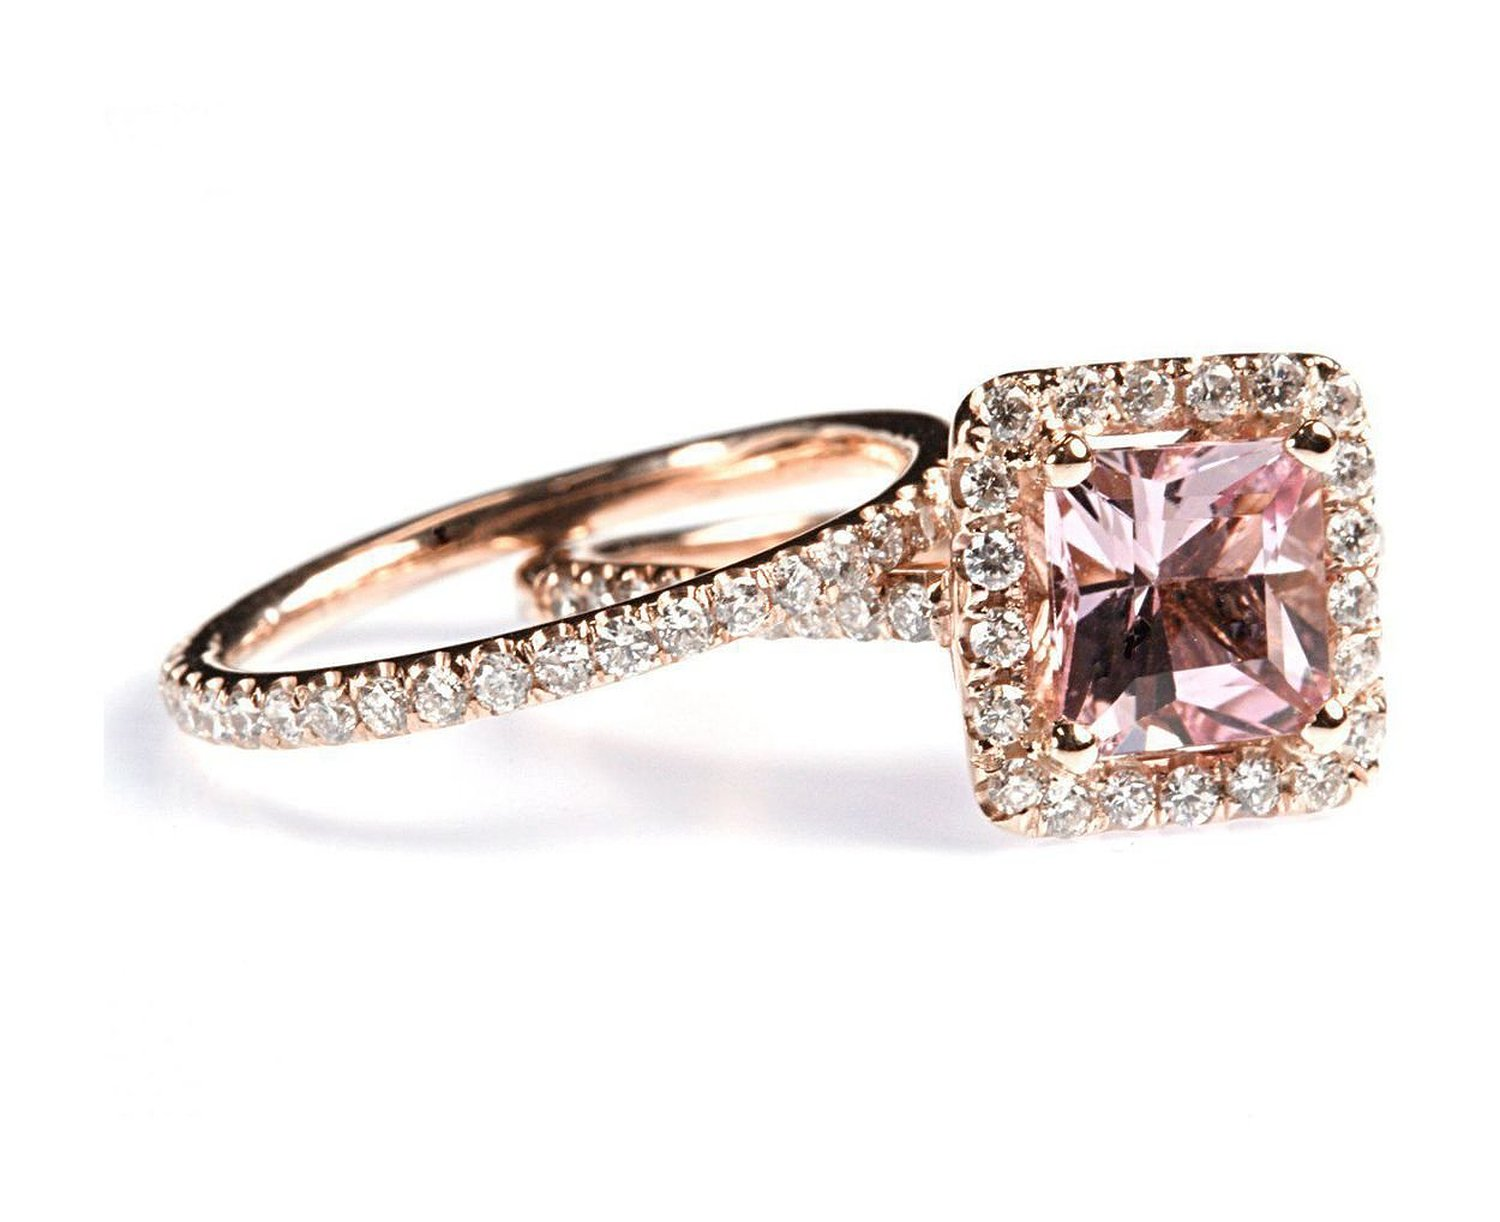 Amazon.com: 1.87 cttw 18k Rose Gold Diamond Morganite Engagement Ring Pink Wedding Ring Sets (Sizes 4-11): Pricegems: Jewelry